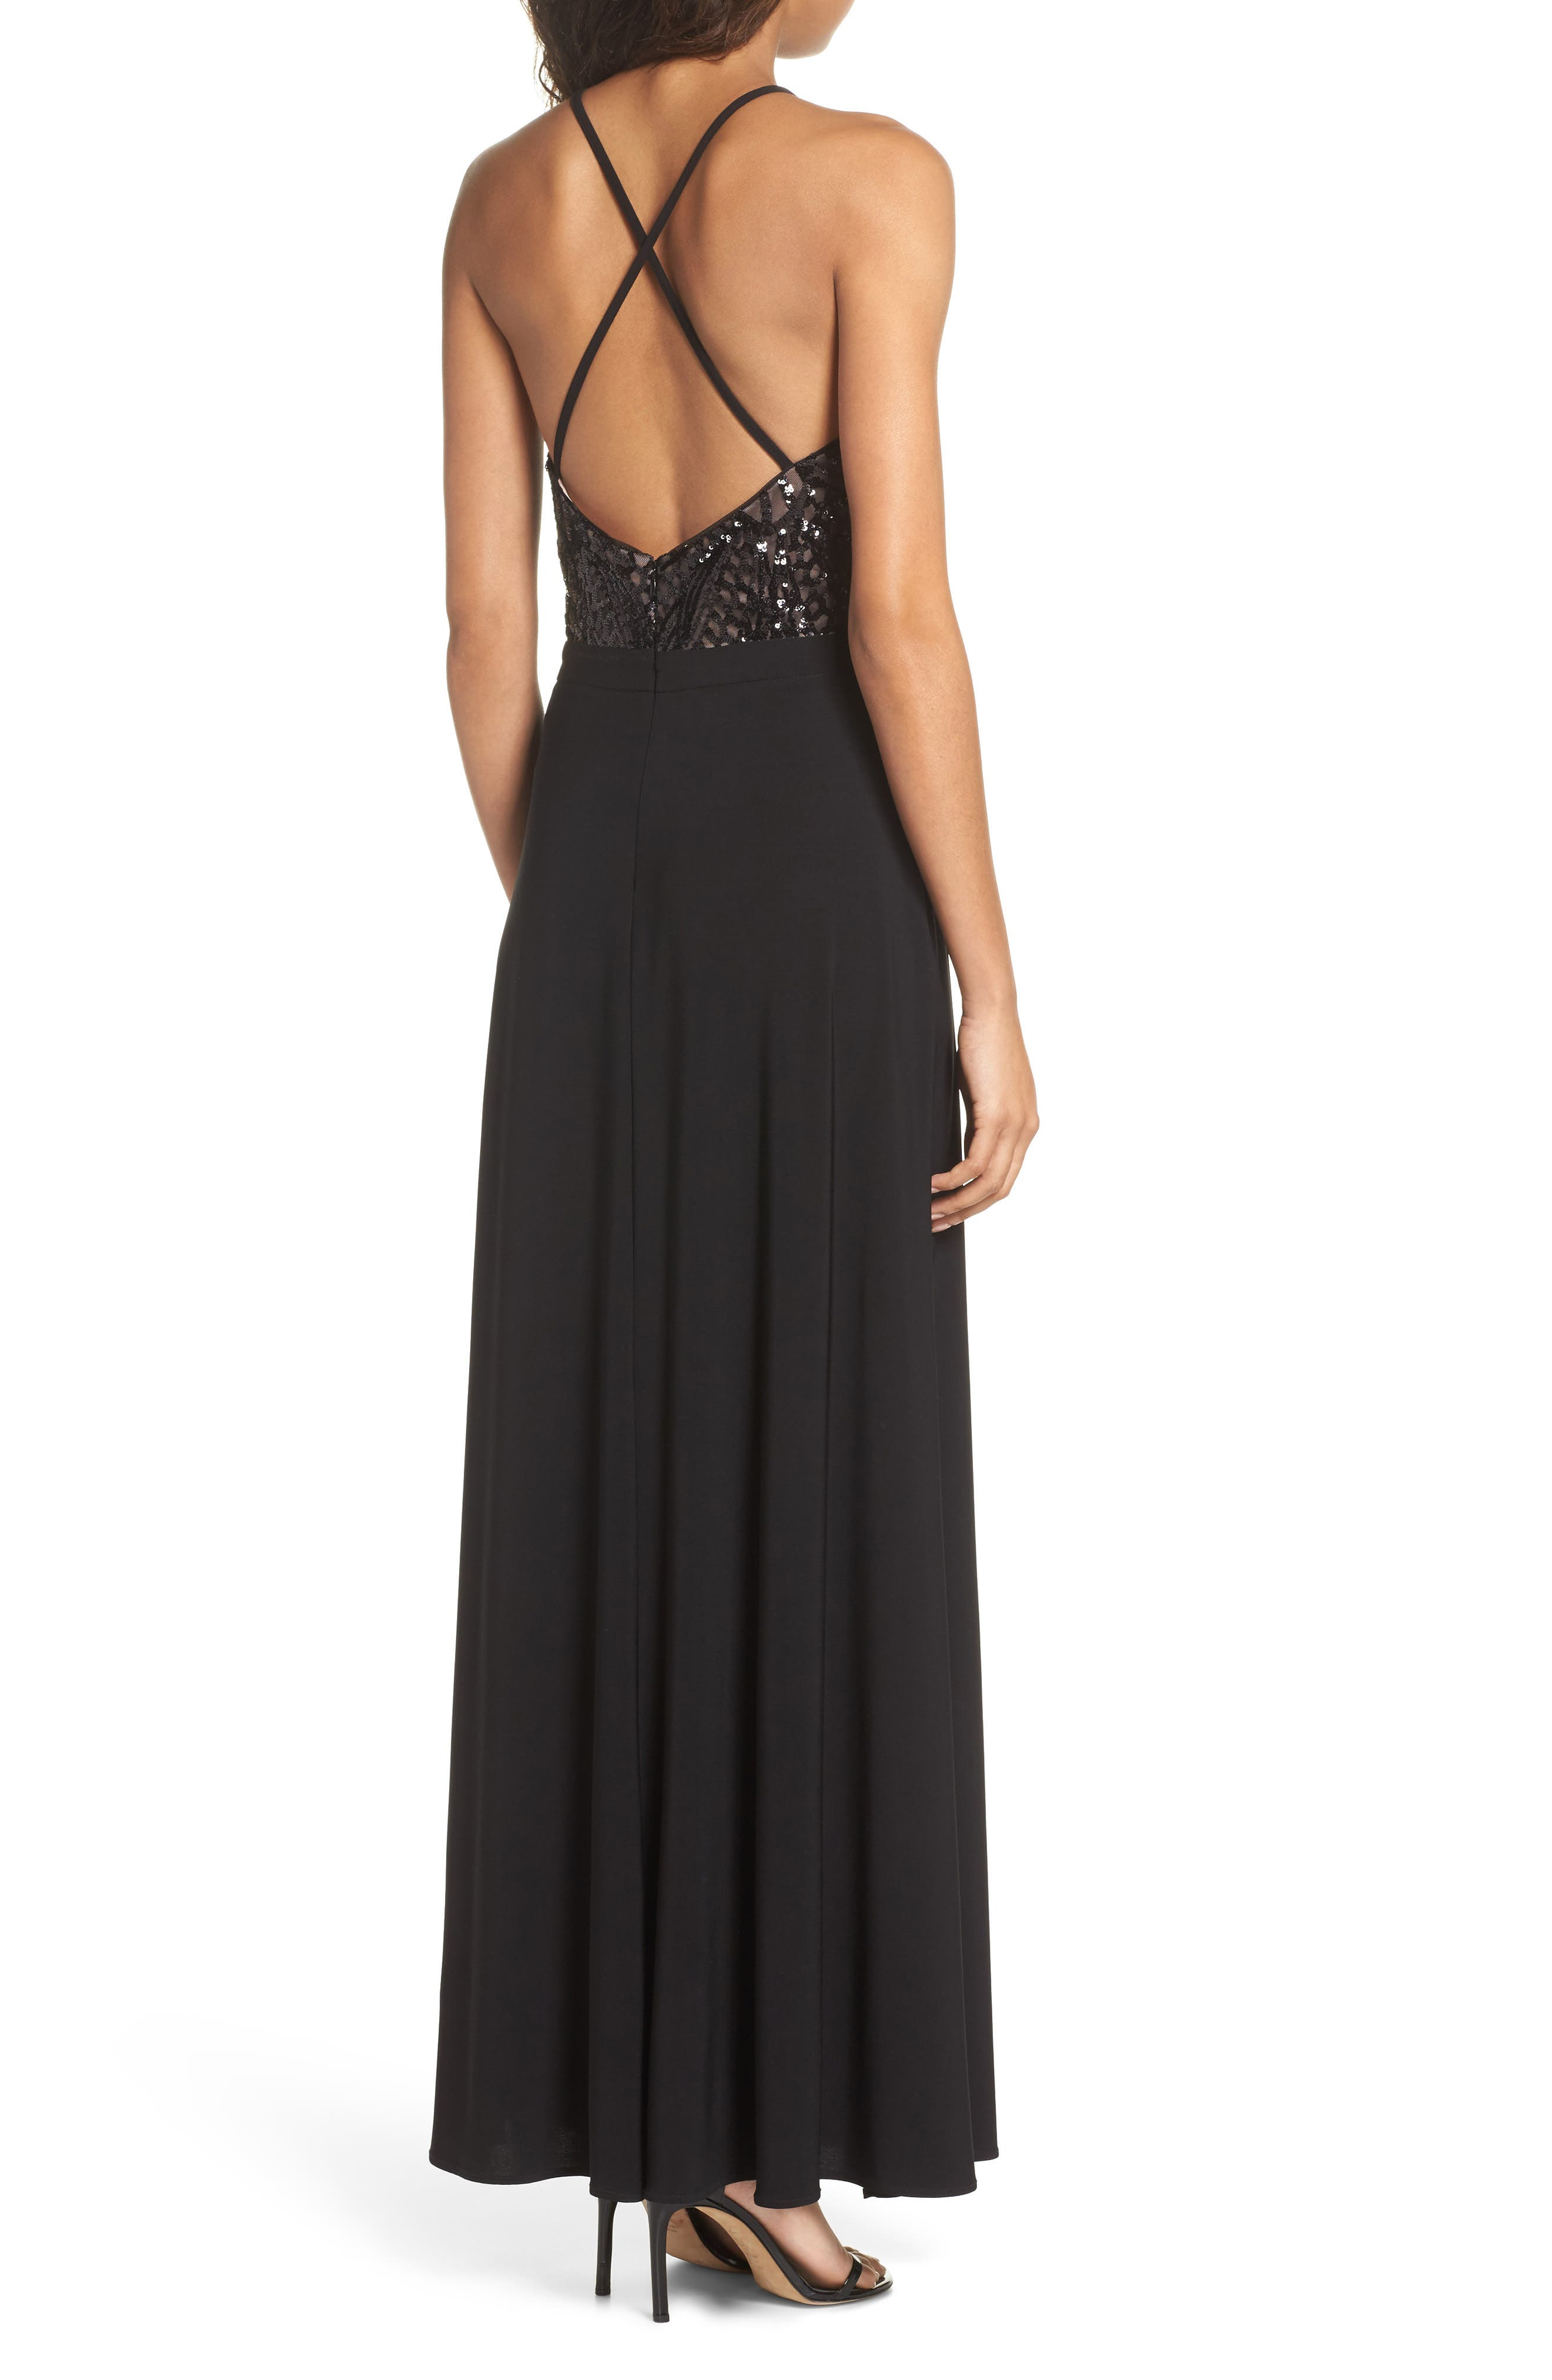 MORGAN & CO.,                             Sequin Halter Gown,                             Alternate thumbnail 2, color,                             BLACK/ NUDE